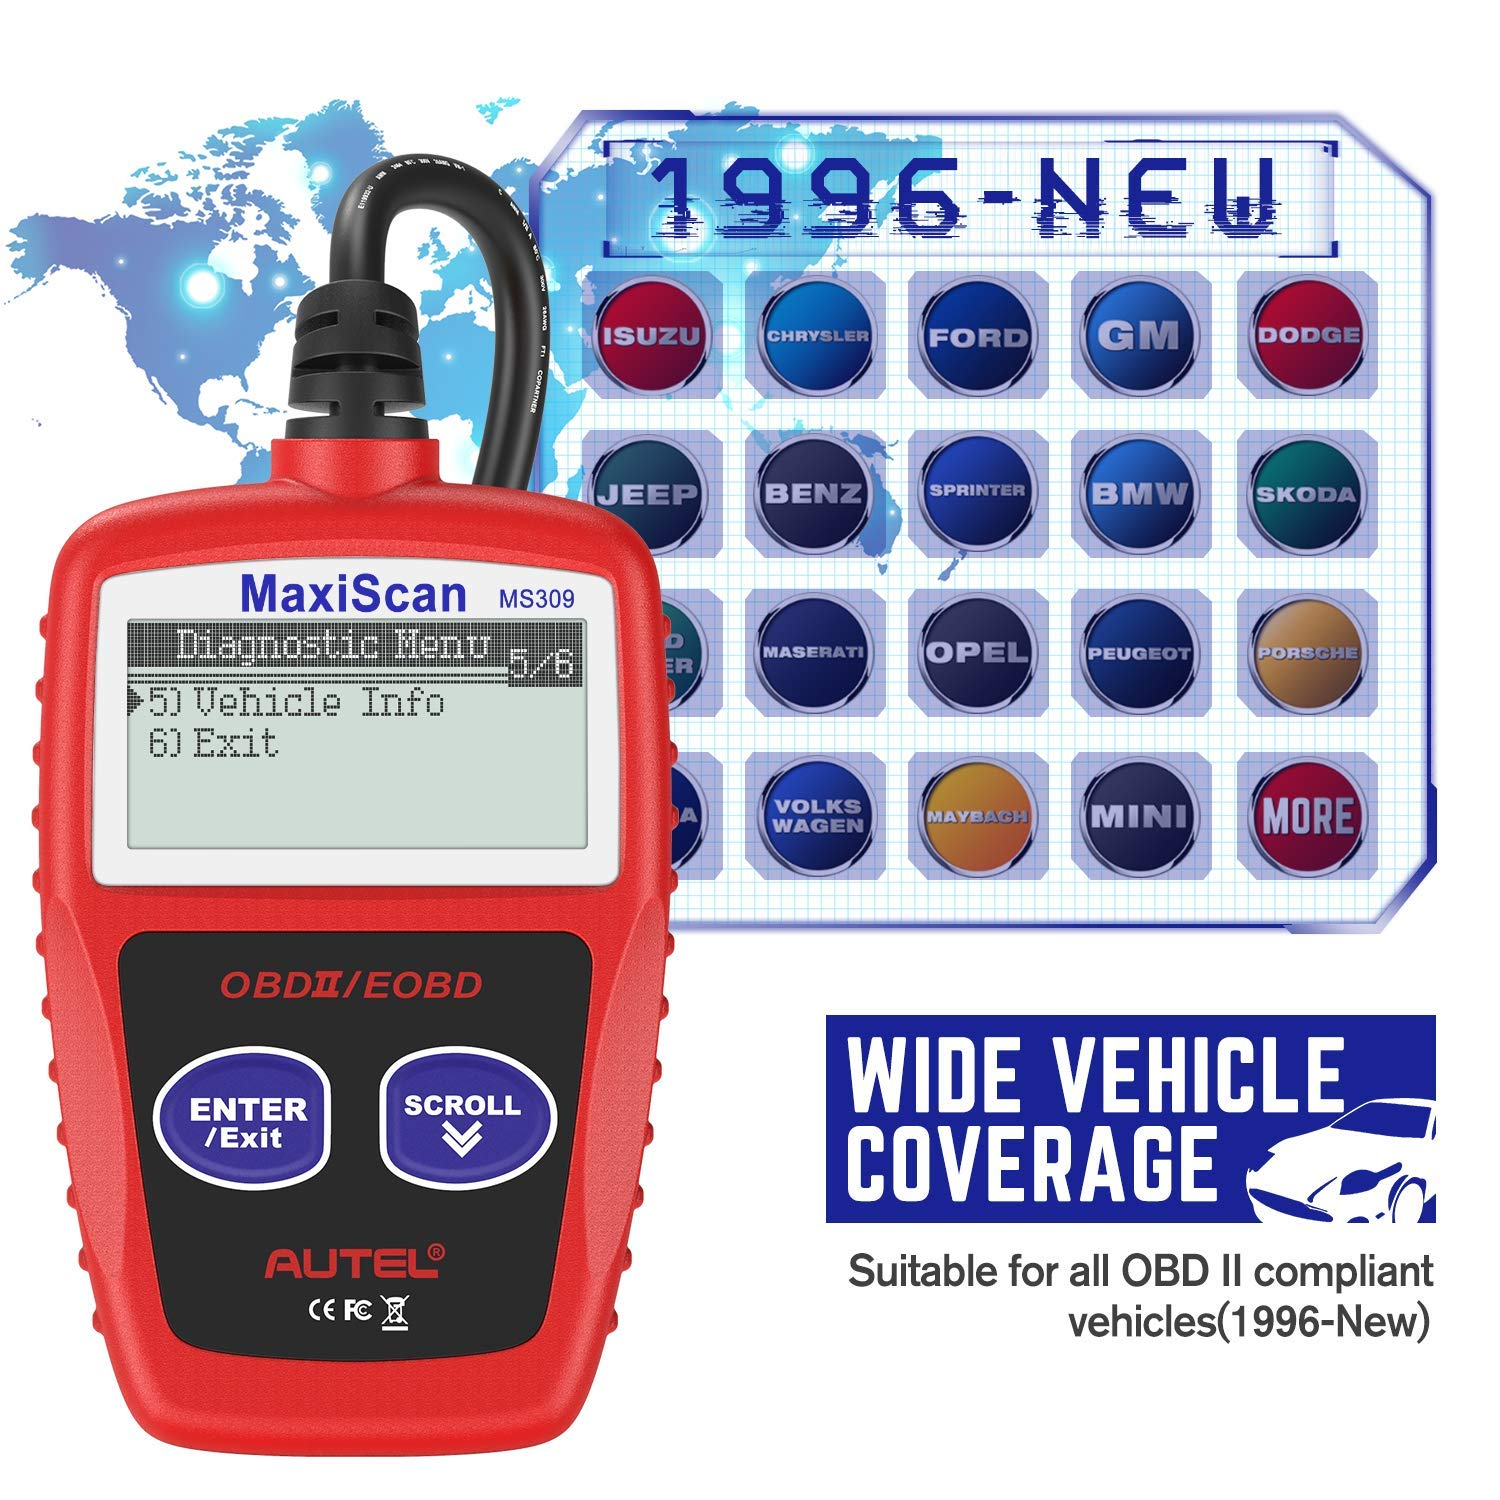 Autel MS309 OBD2 Scanner Check Engine Fault Code Reader, Read Codes Clear Codes, View Freeze Frame Data, I/M Readiness Smog Check CAN Diagnostic Scan Tool